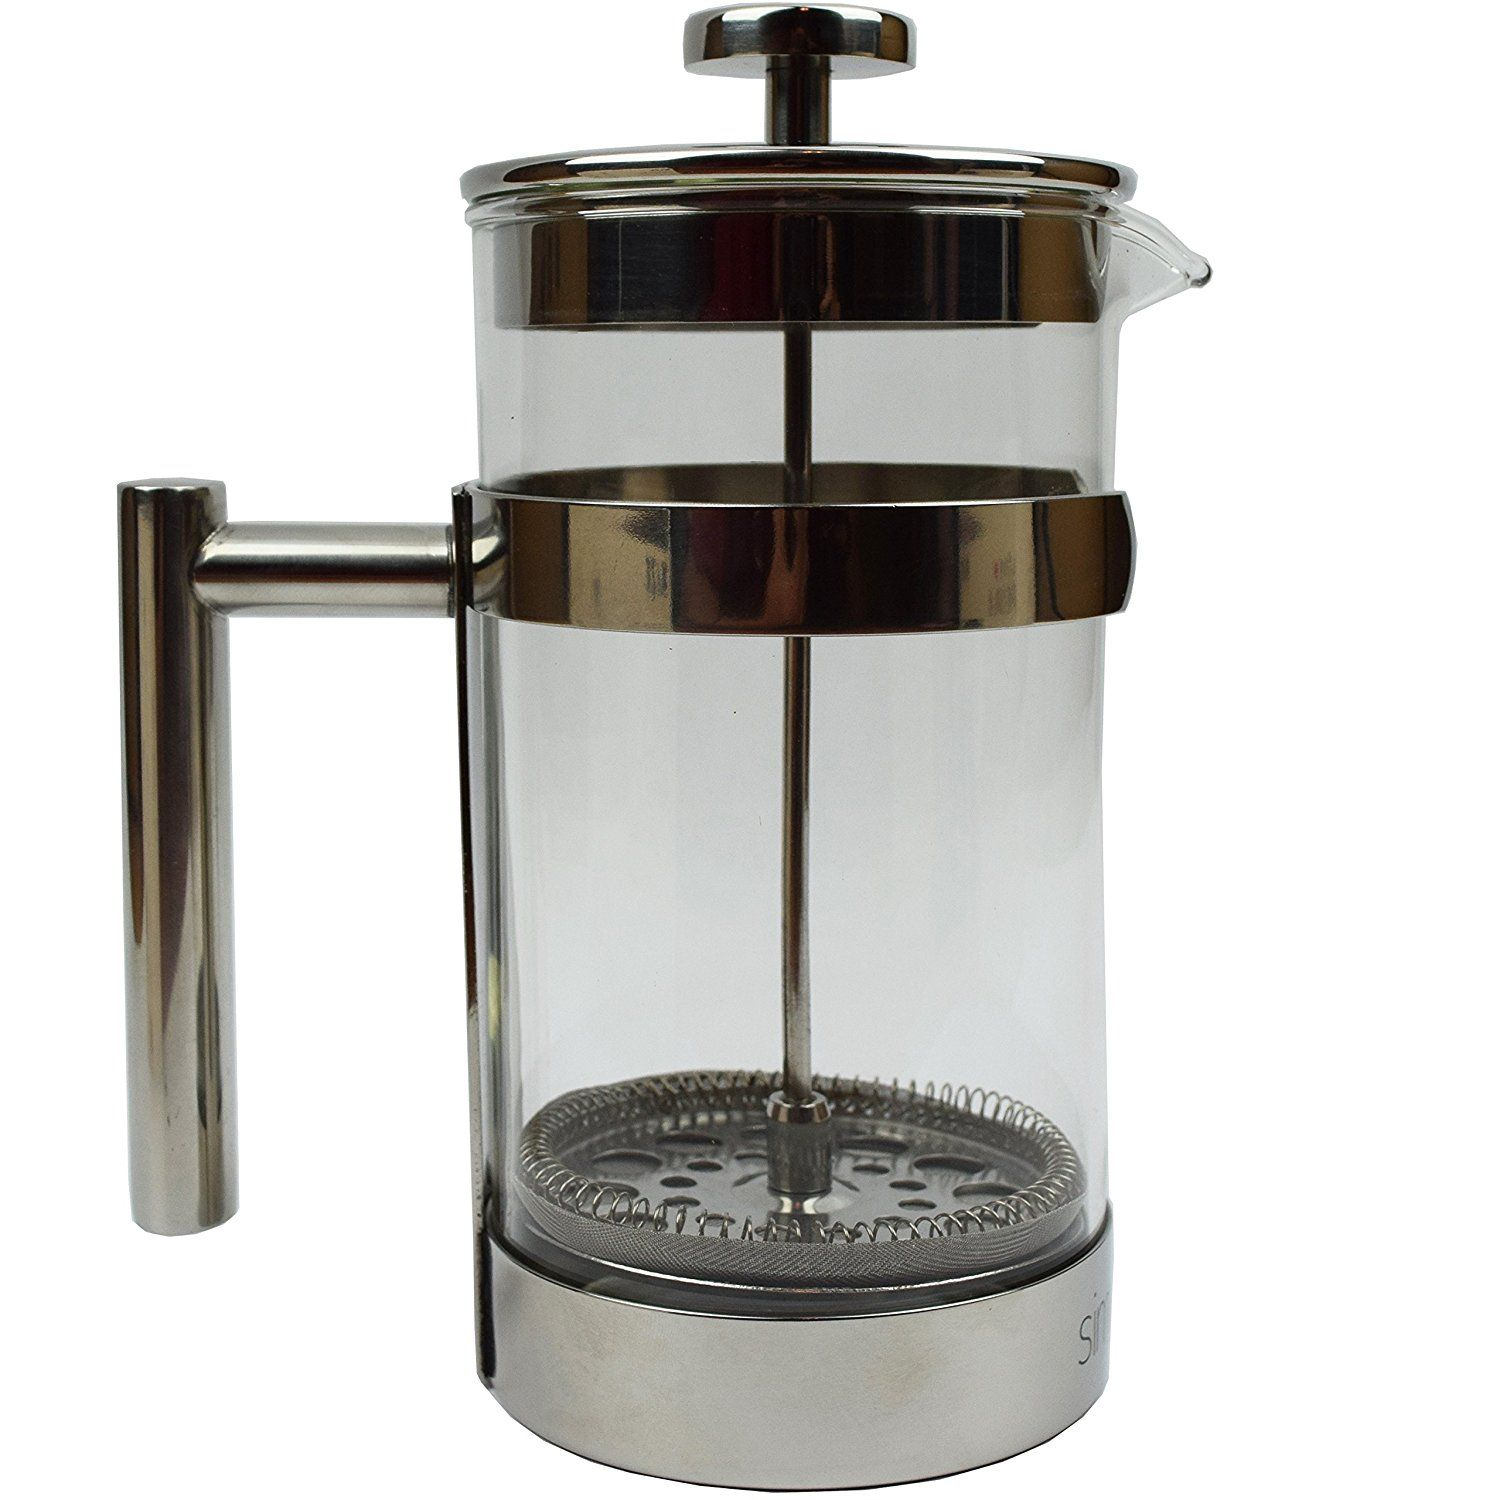 simple modern french press coffee and tea maker   liter  double  - simple modern french press coffee and tea maker   liter  double filter bonus